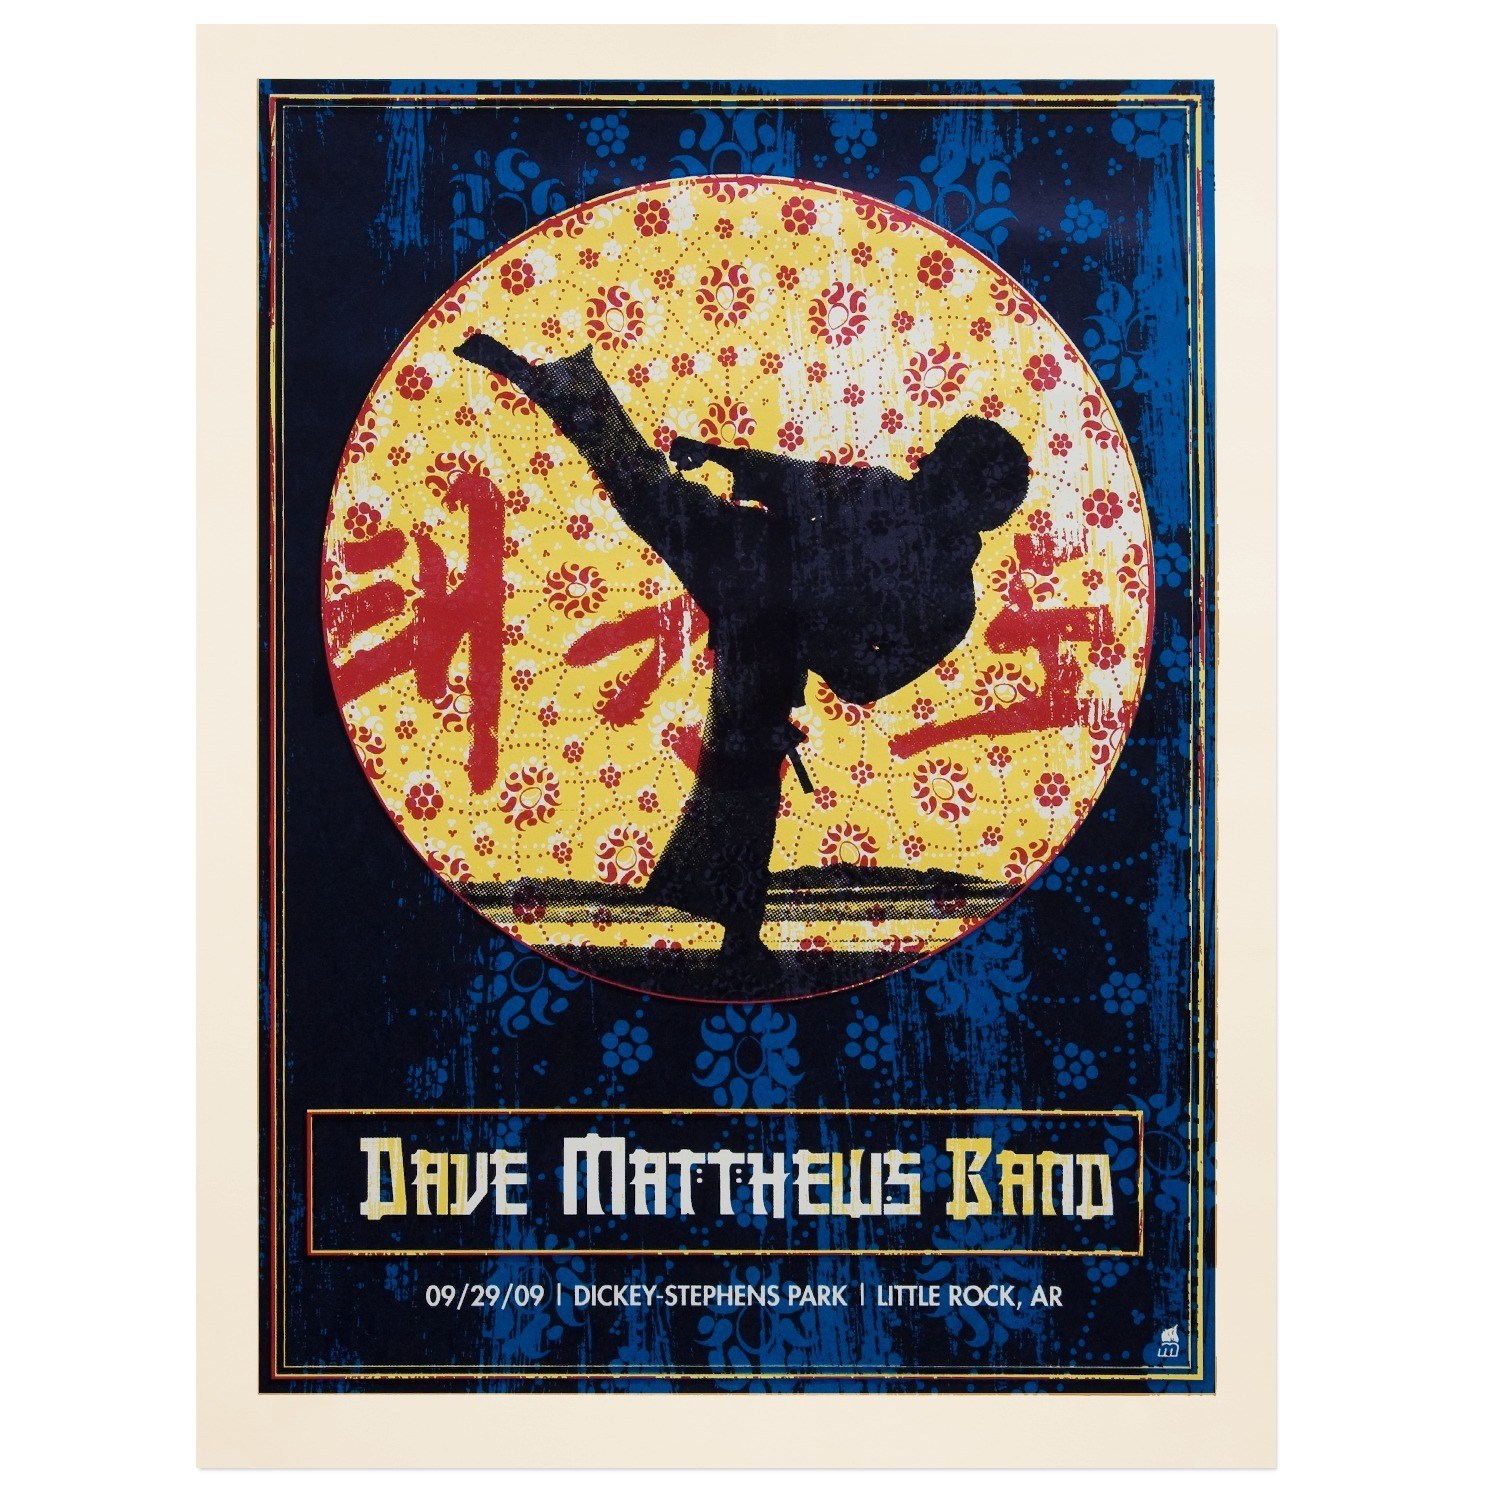 DMB Little Rock, AR 09/29/09 Show Poster